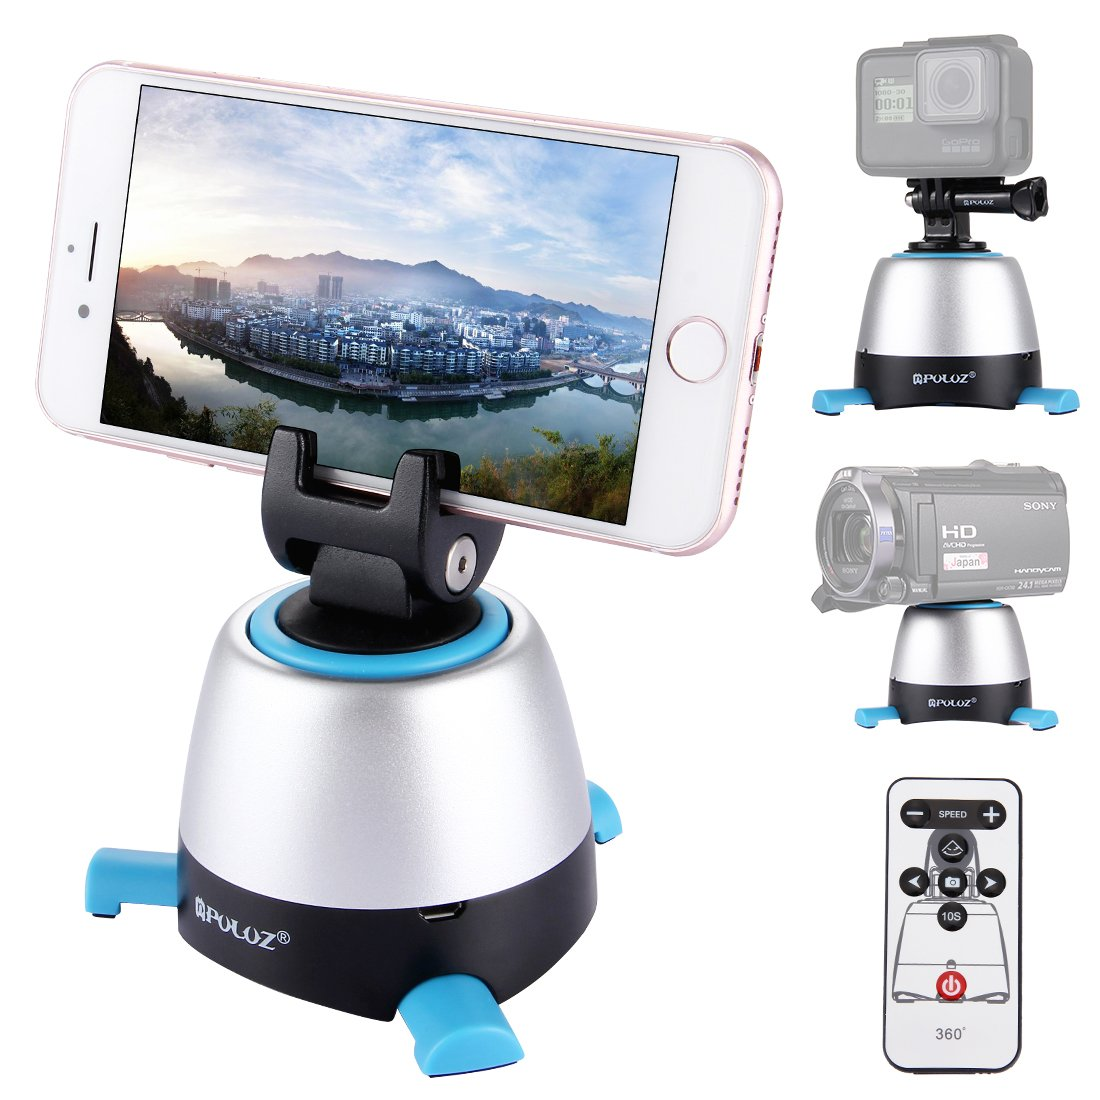 360°Panoramic Shooting, PULUZ Electric Intelligent Tripod Head Rotation with IR Remote Control & Build-in Bluetooth for Most of Cellphones & Cameras Max load: 1kg/2.2lb